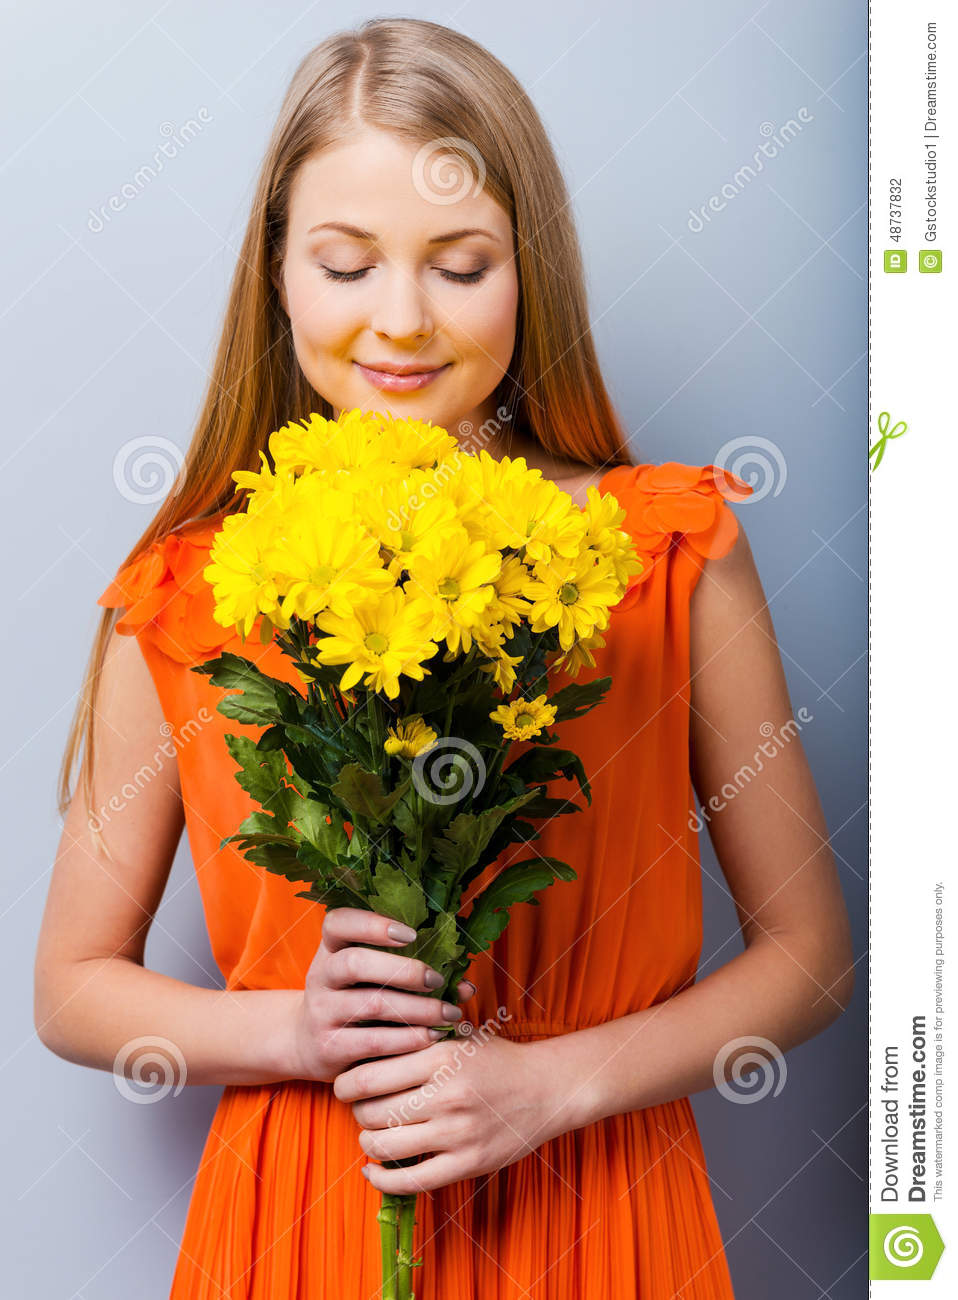 The most beautiful flowers for the most beautiful girl stock photo the most beautiful flowers for the most beautiful girl izmirmasajfo